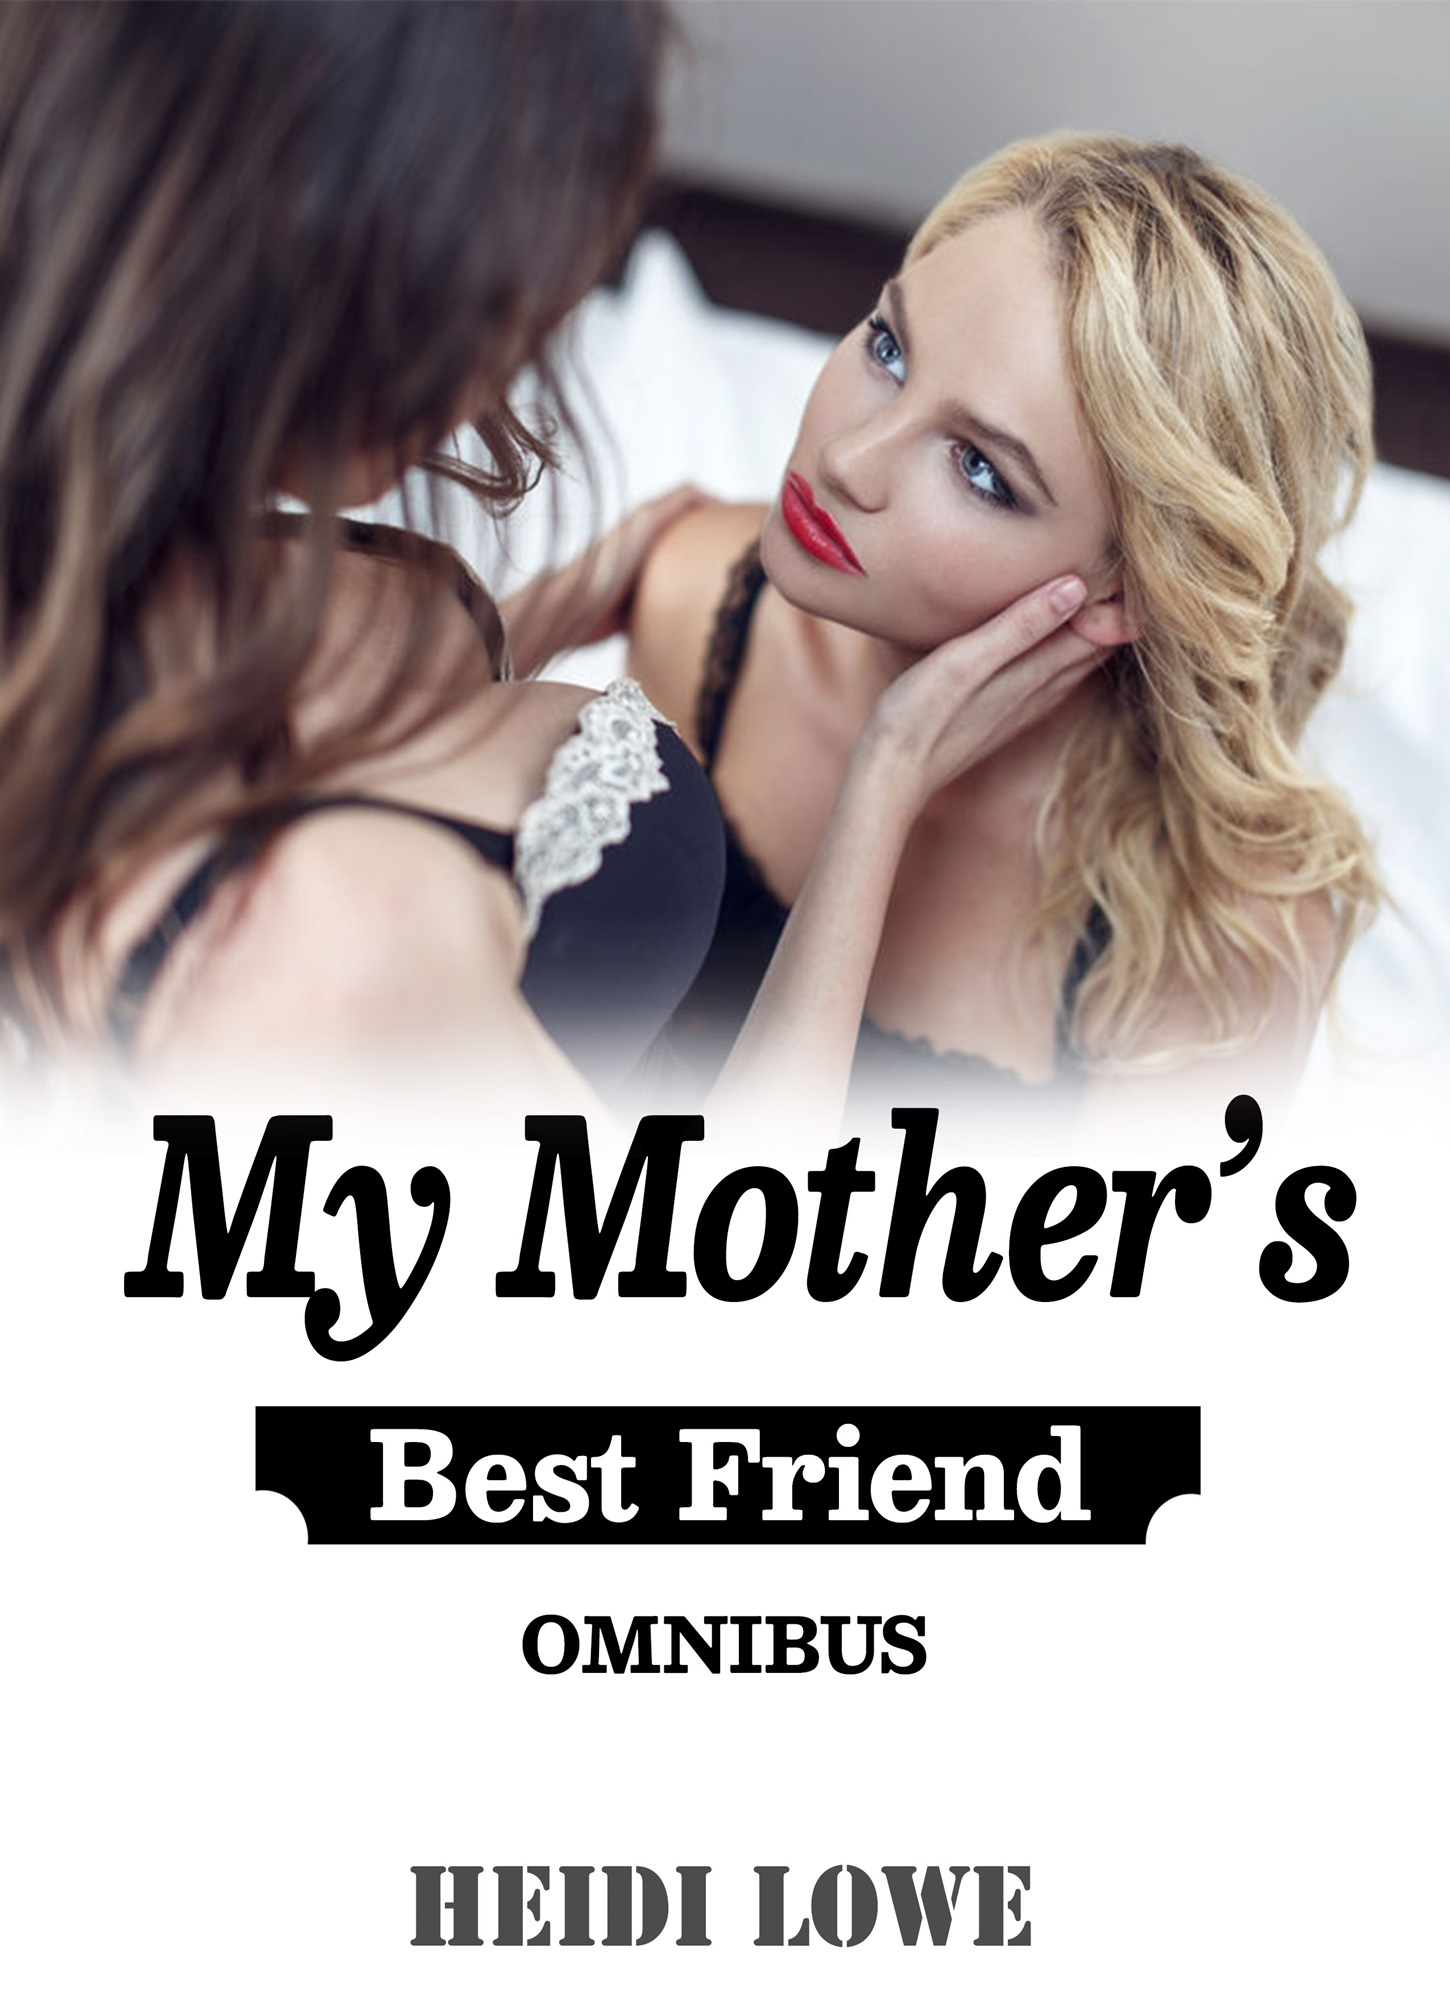 Mothers friend my 10 Undeniable